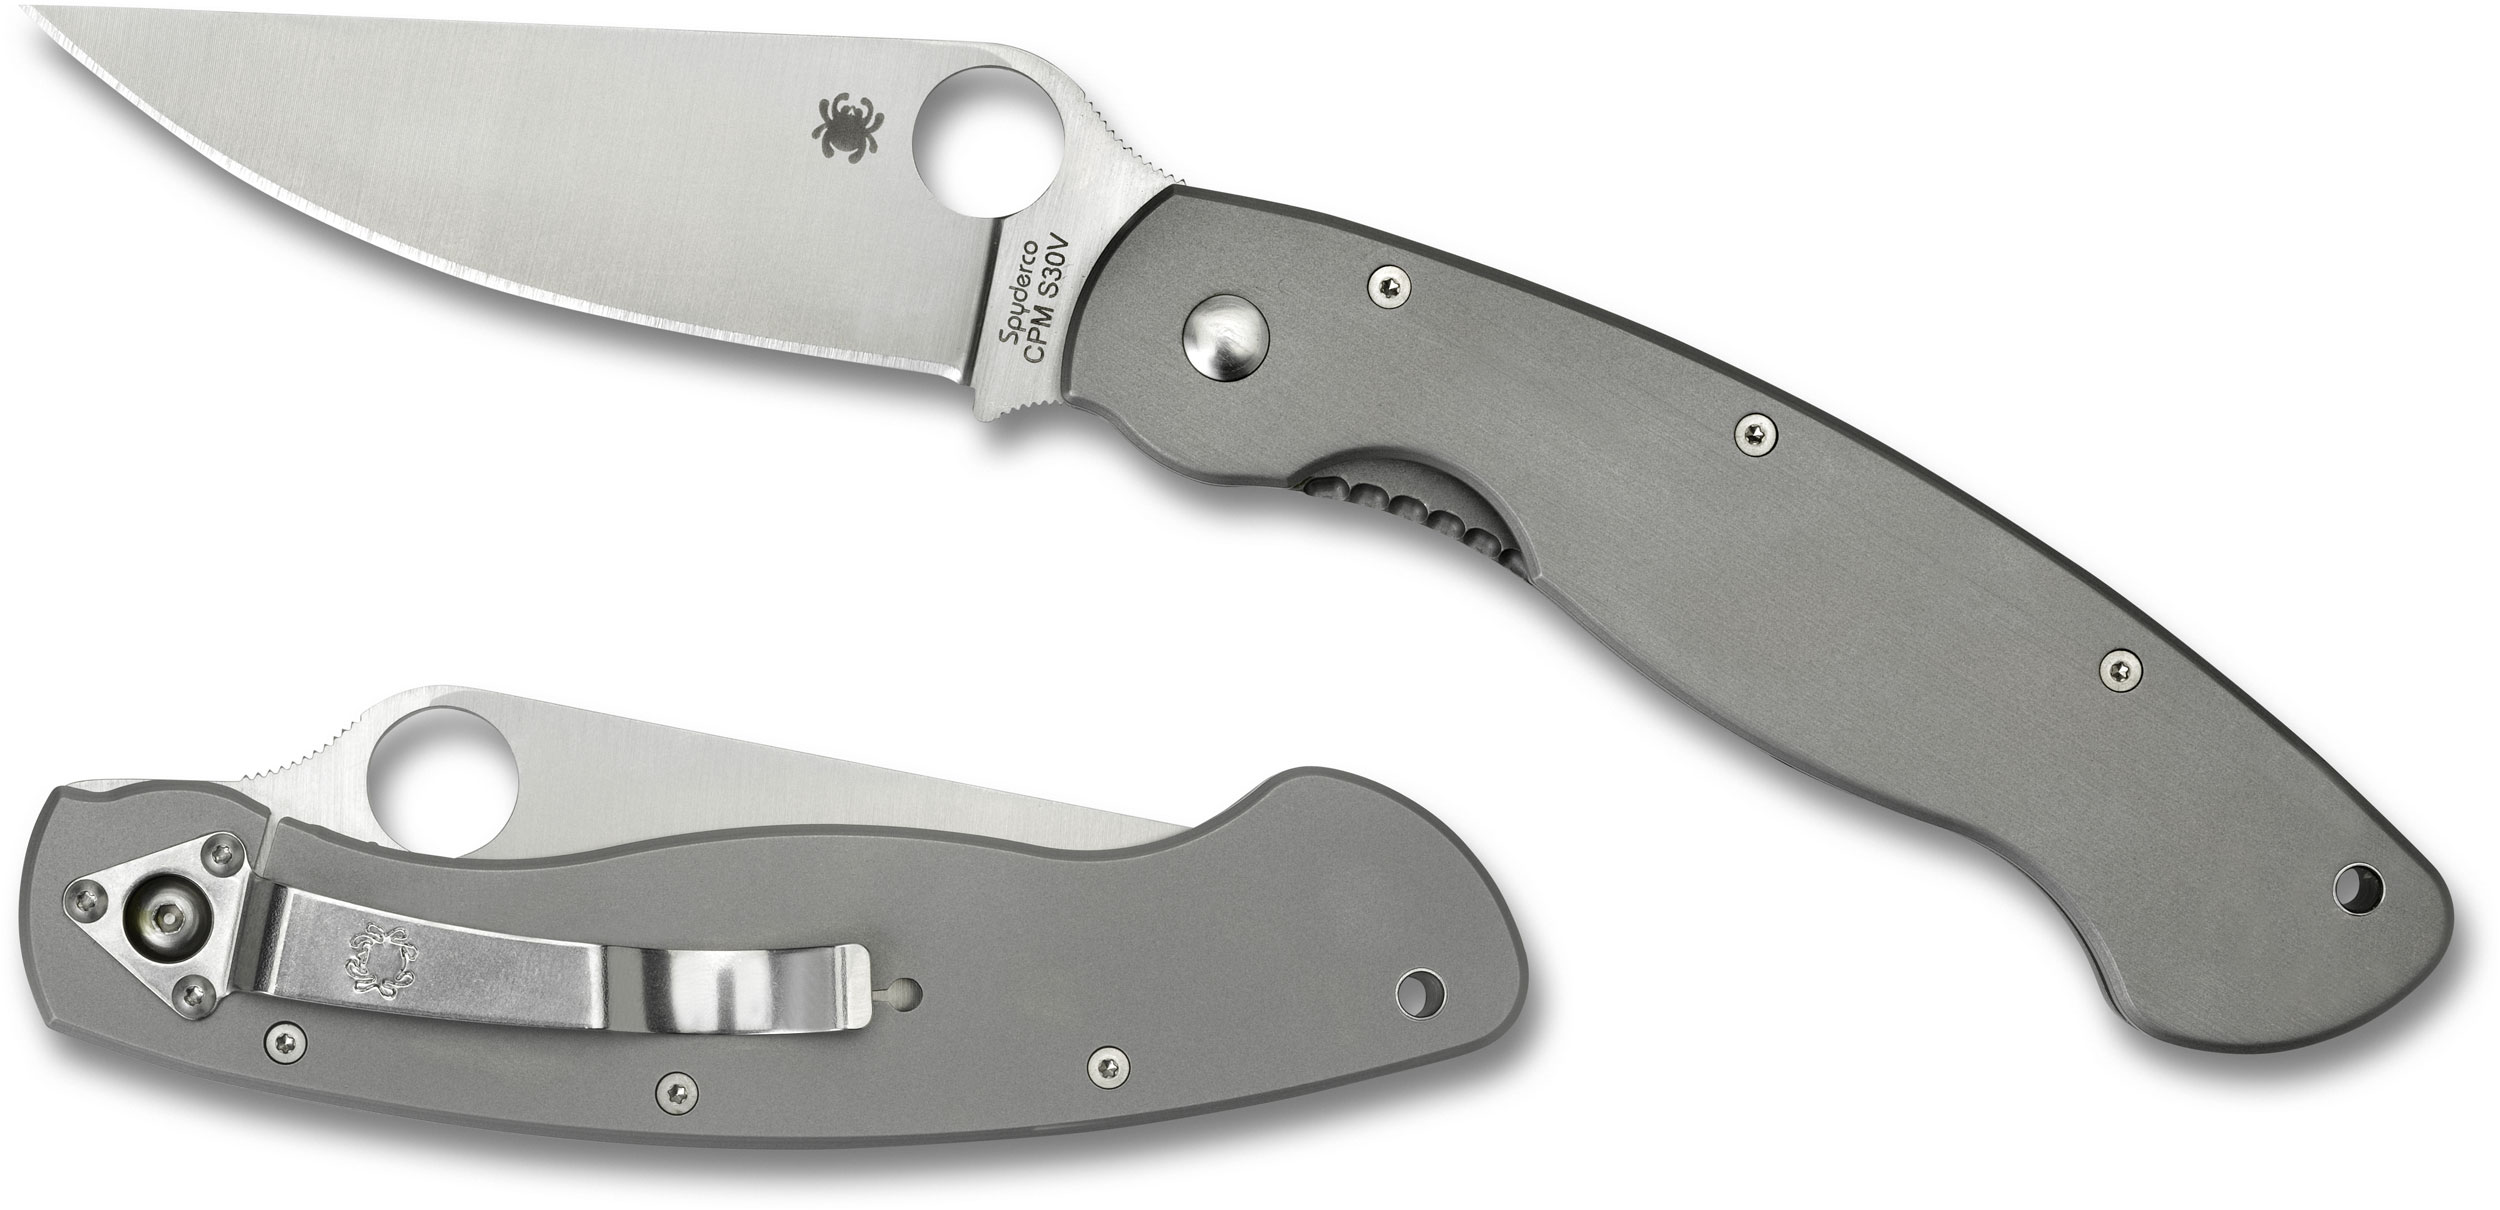 Buy Spyderco Military at KnifeCenter